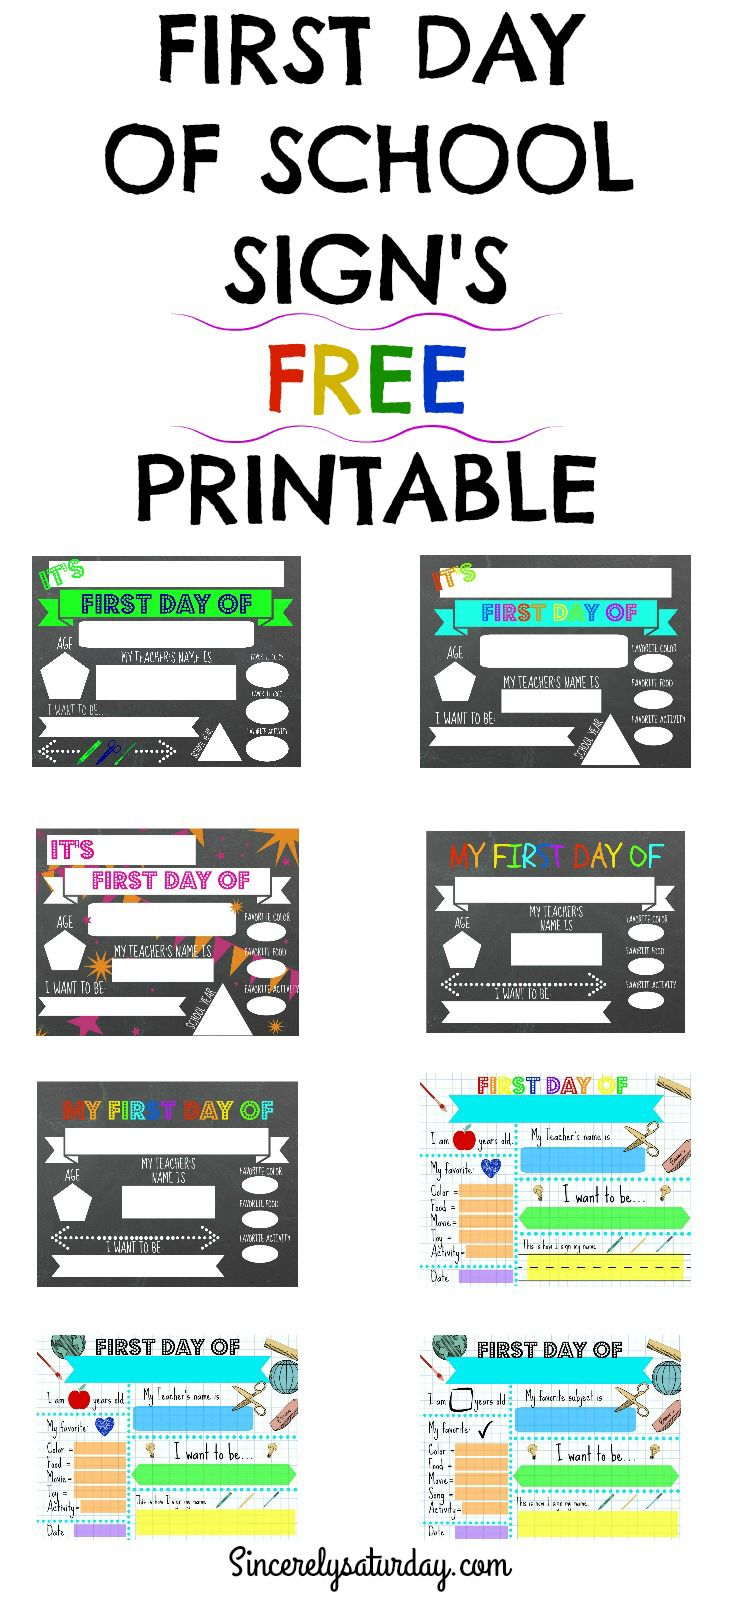 Free Printable First Day Of School Signs Blog Sincerely Saturday